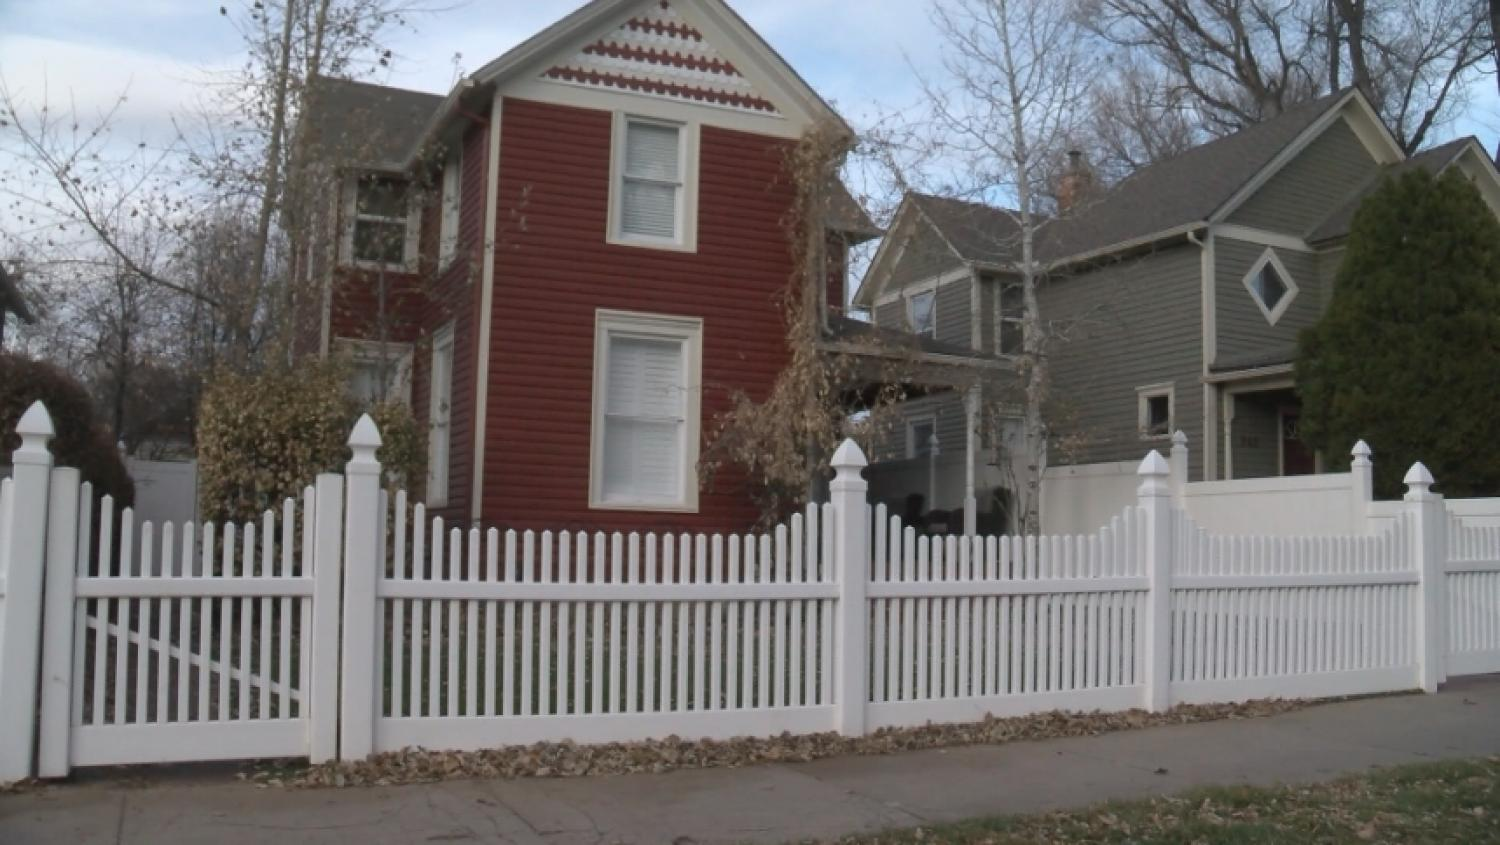 Dozens of children found behind false wall at Colorado daycare